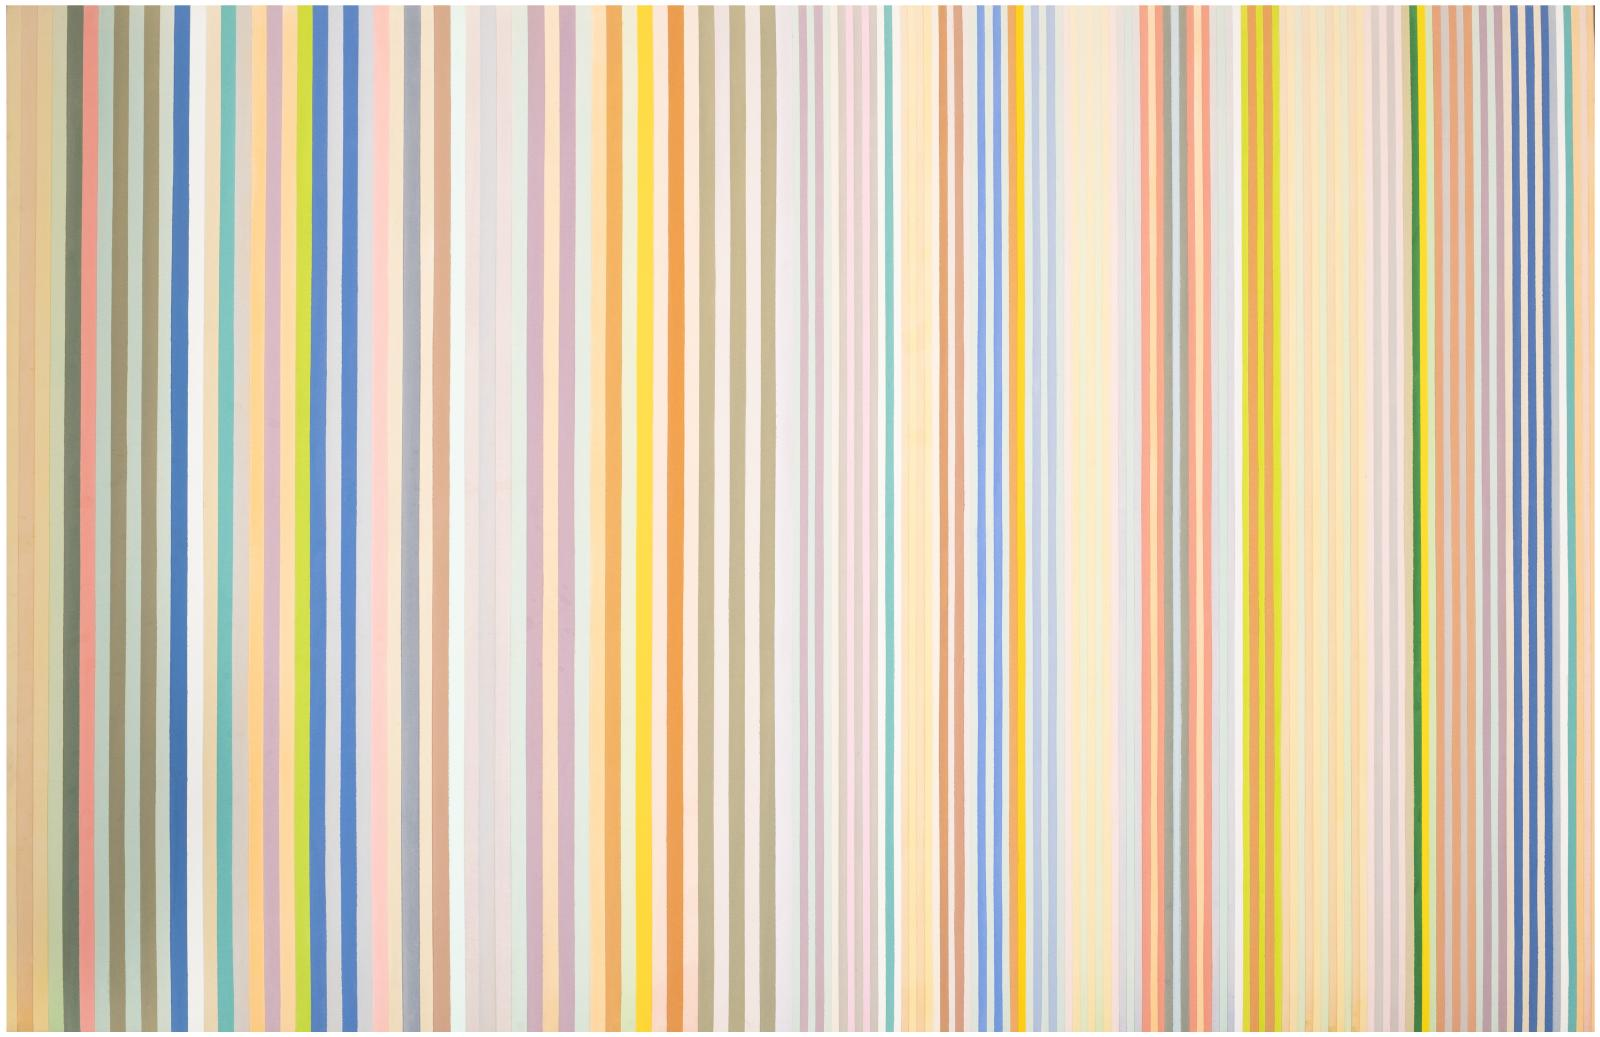 An abstract painting consisting solely of vertical stripes in muted tones